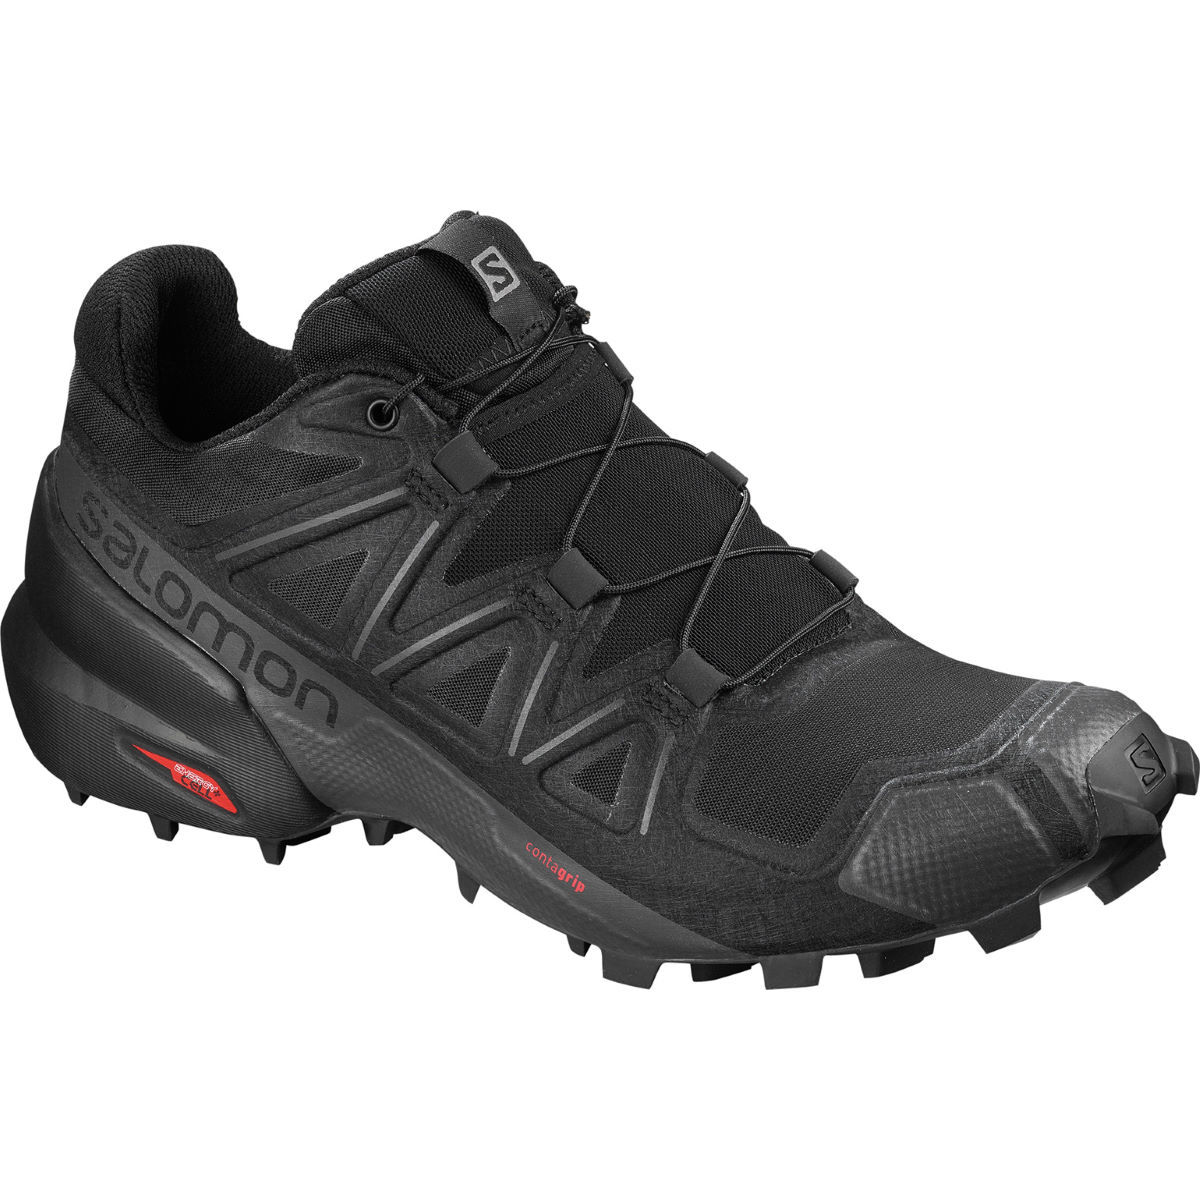 Salomon Women's Speedcross 5 Shoes - UK 4.5 Black/Black | Trail Shoes